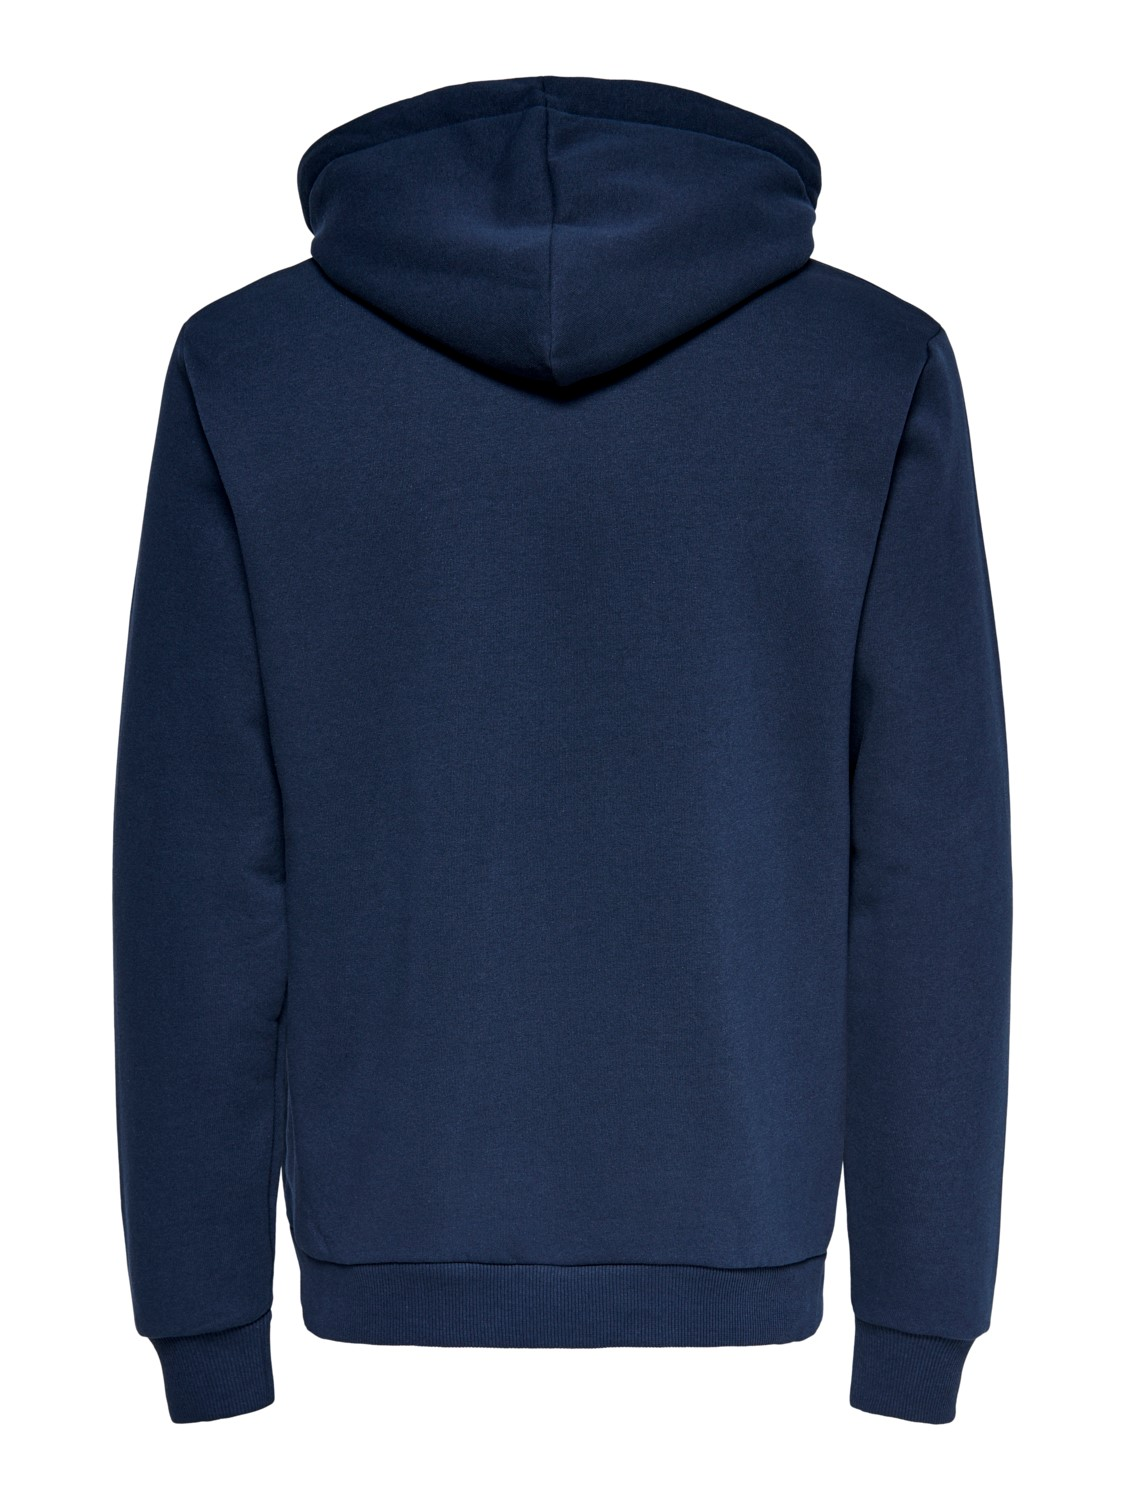 ONLY & SONS - ONSCERES HOODIE BLUE | Gate36 Hobro